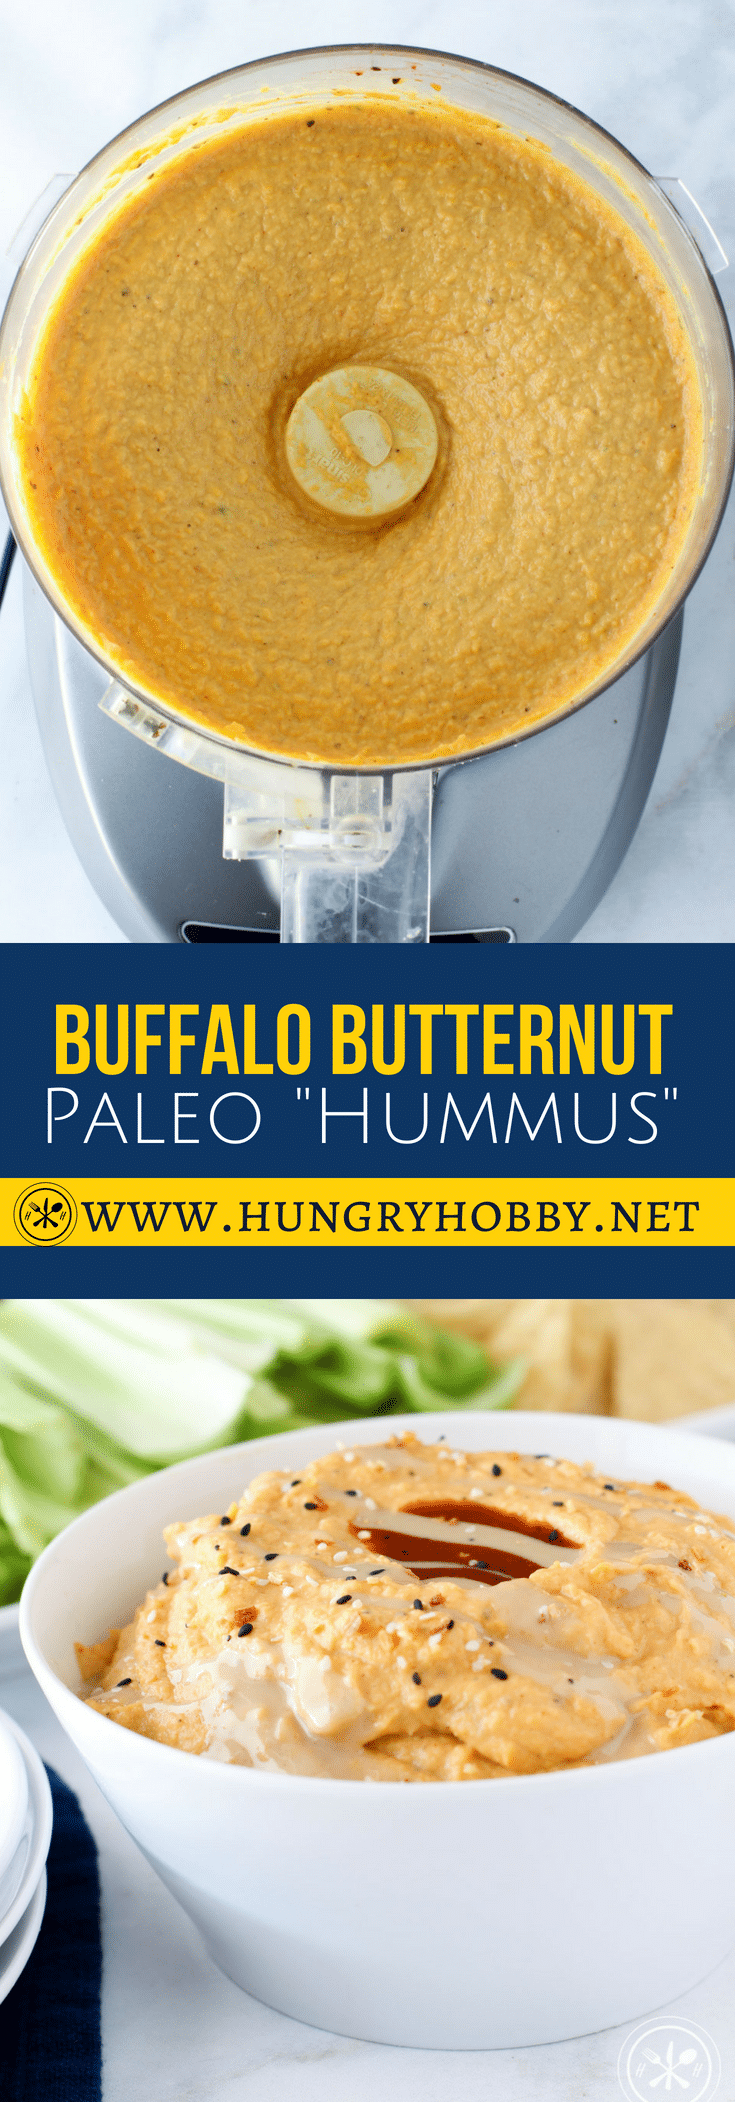 Creamy butternut squash and tahini come together with buffalo sauce to make an addicting sweet and spicy dip perfect for football Sundays! #dips #appetizer #paleo #glutenfree #healthy  #paleoappetizers #hungryhobby #dairyfree #beanfree